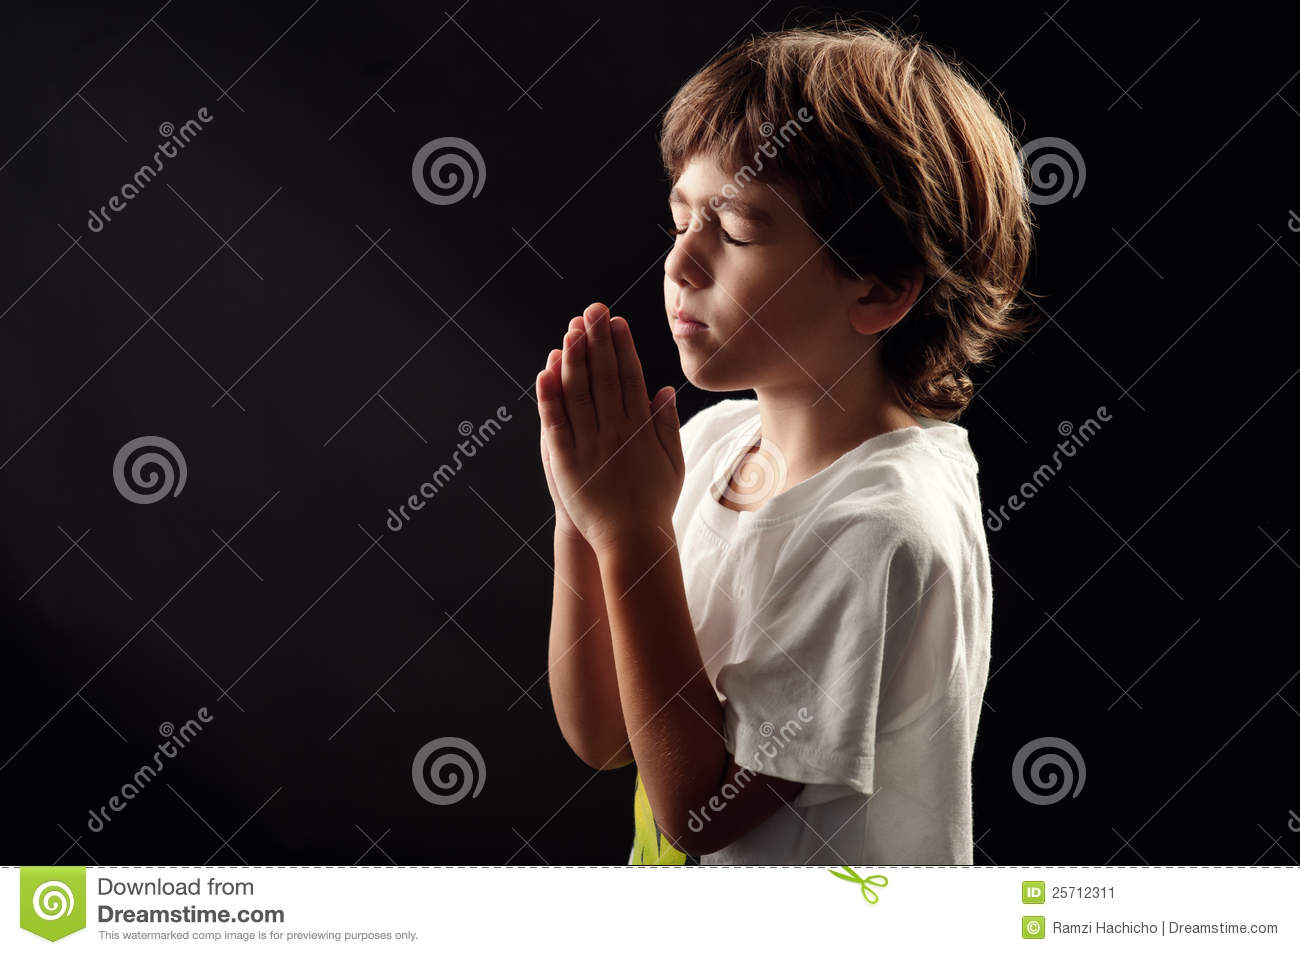 Young kid in a spiritual peaceful moment praying